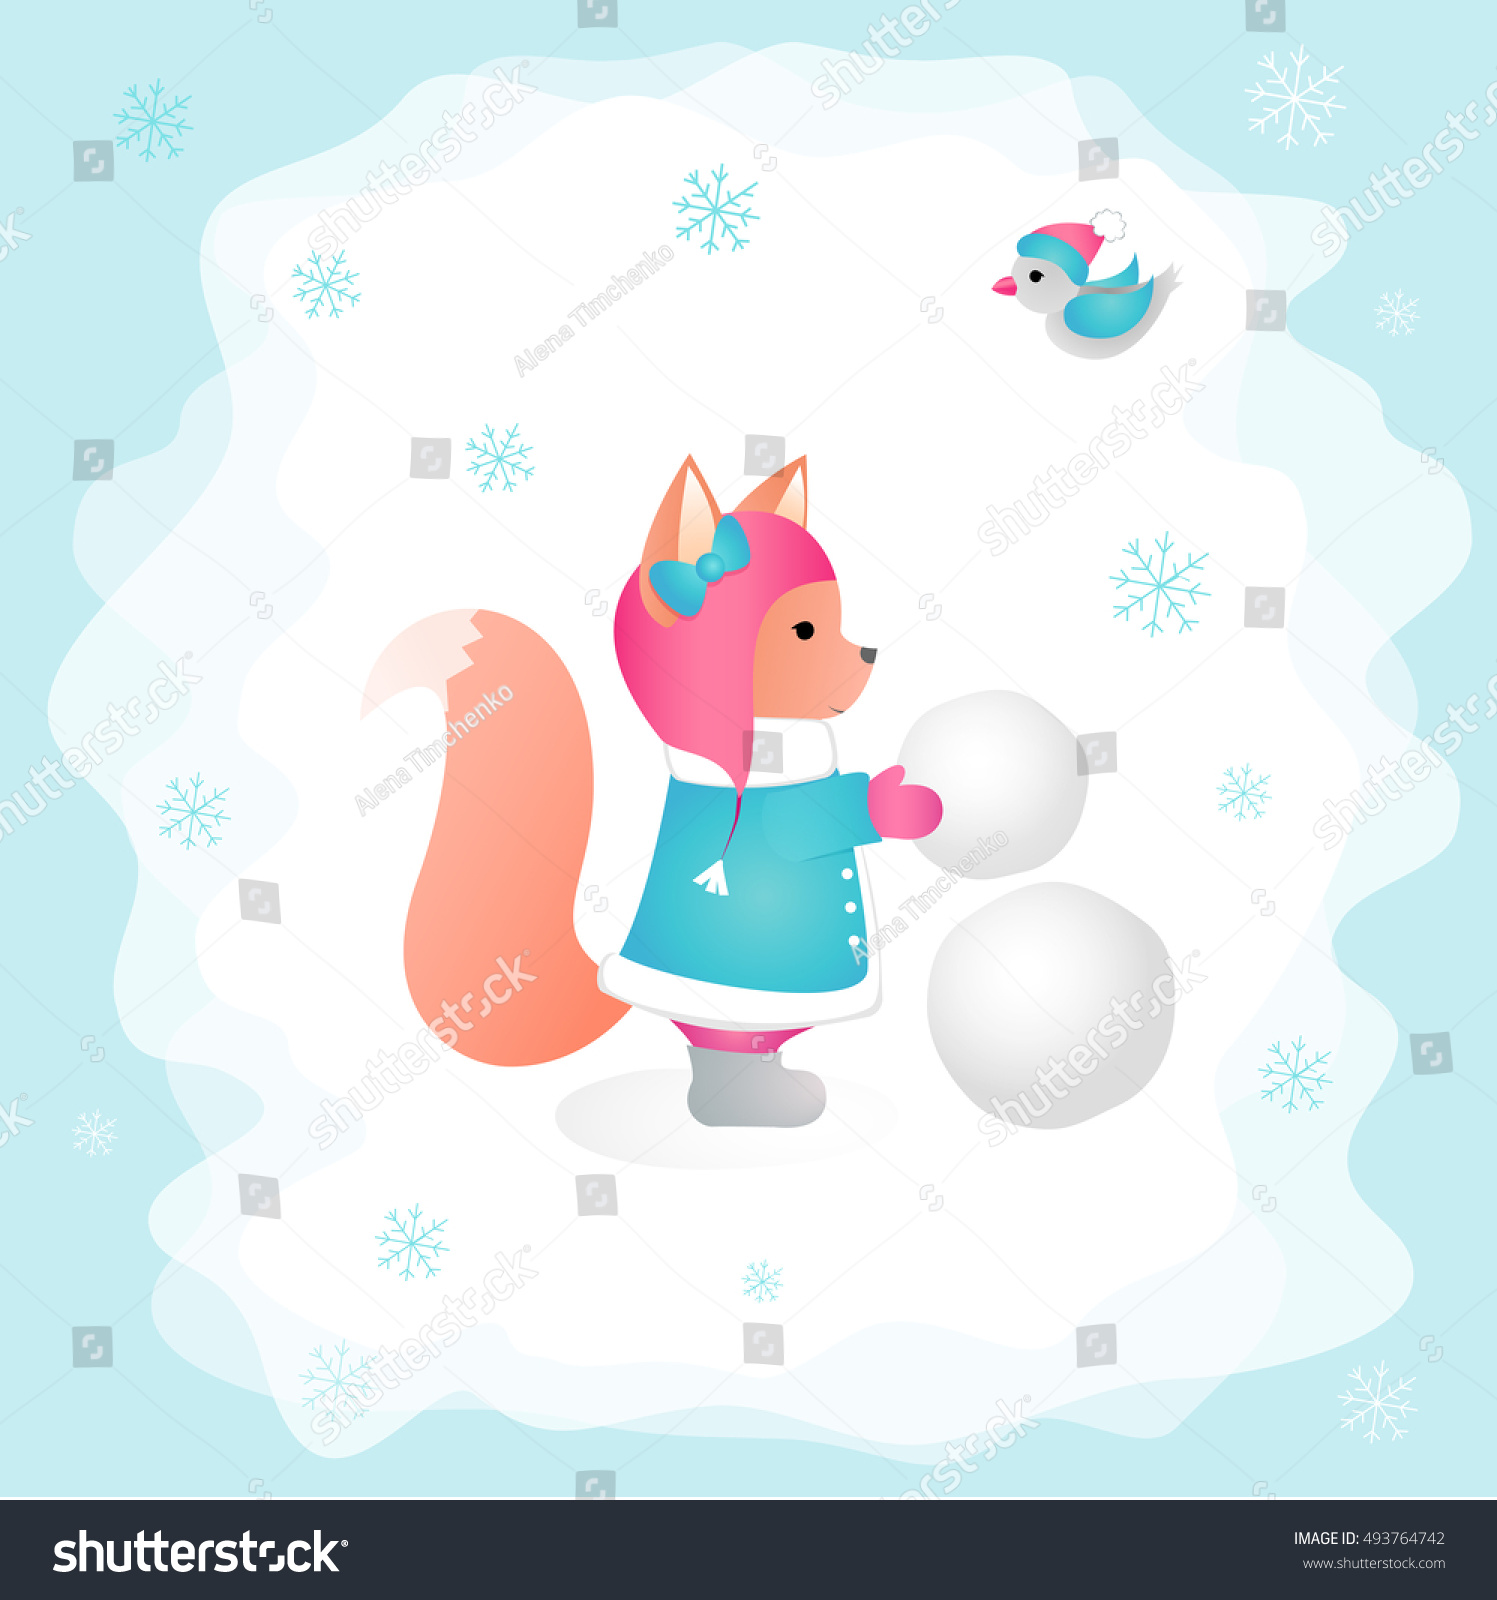 squirrel sculpts snowman forest childrens illustration stock